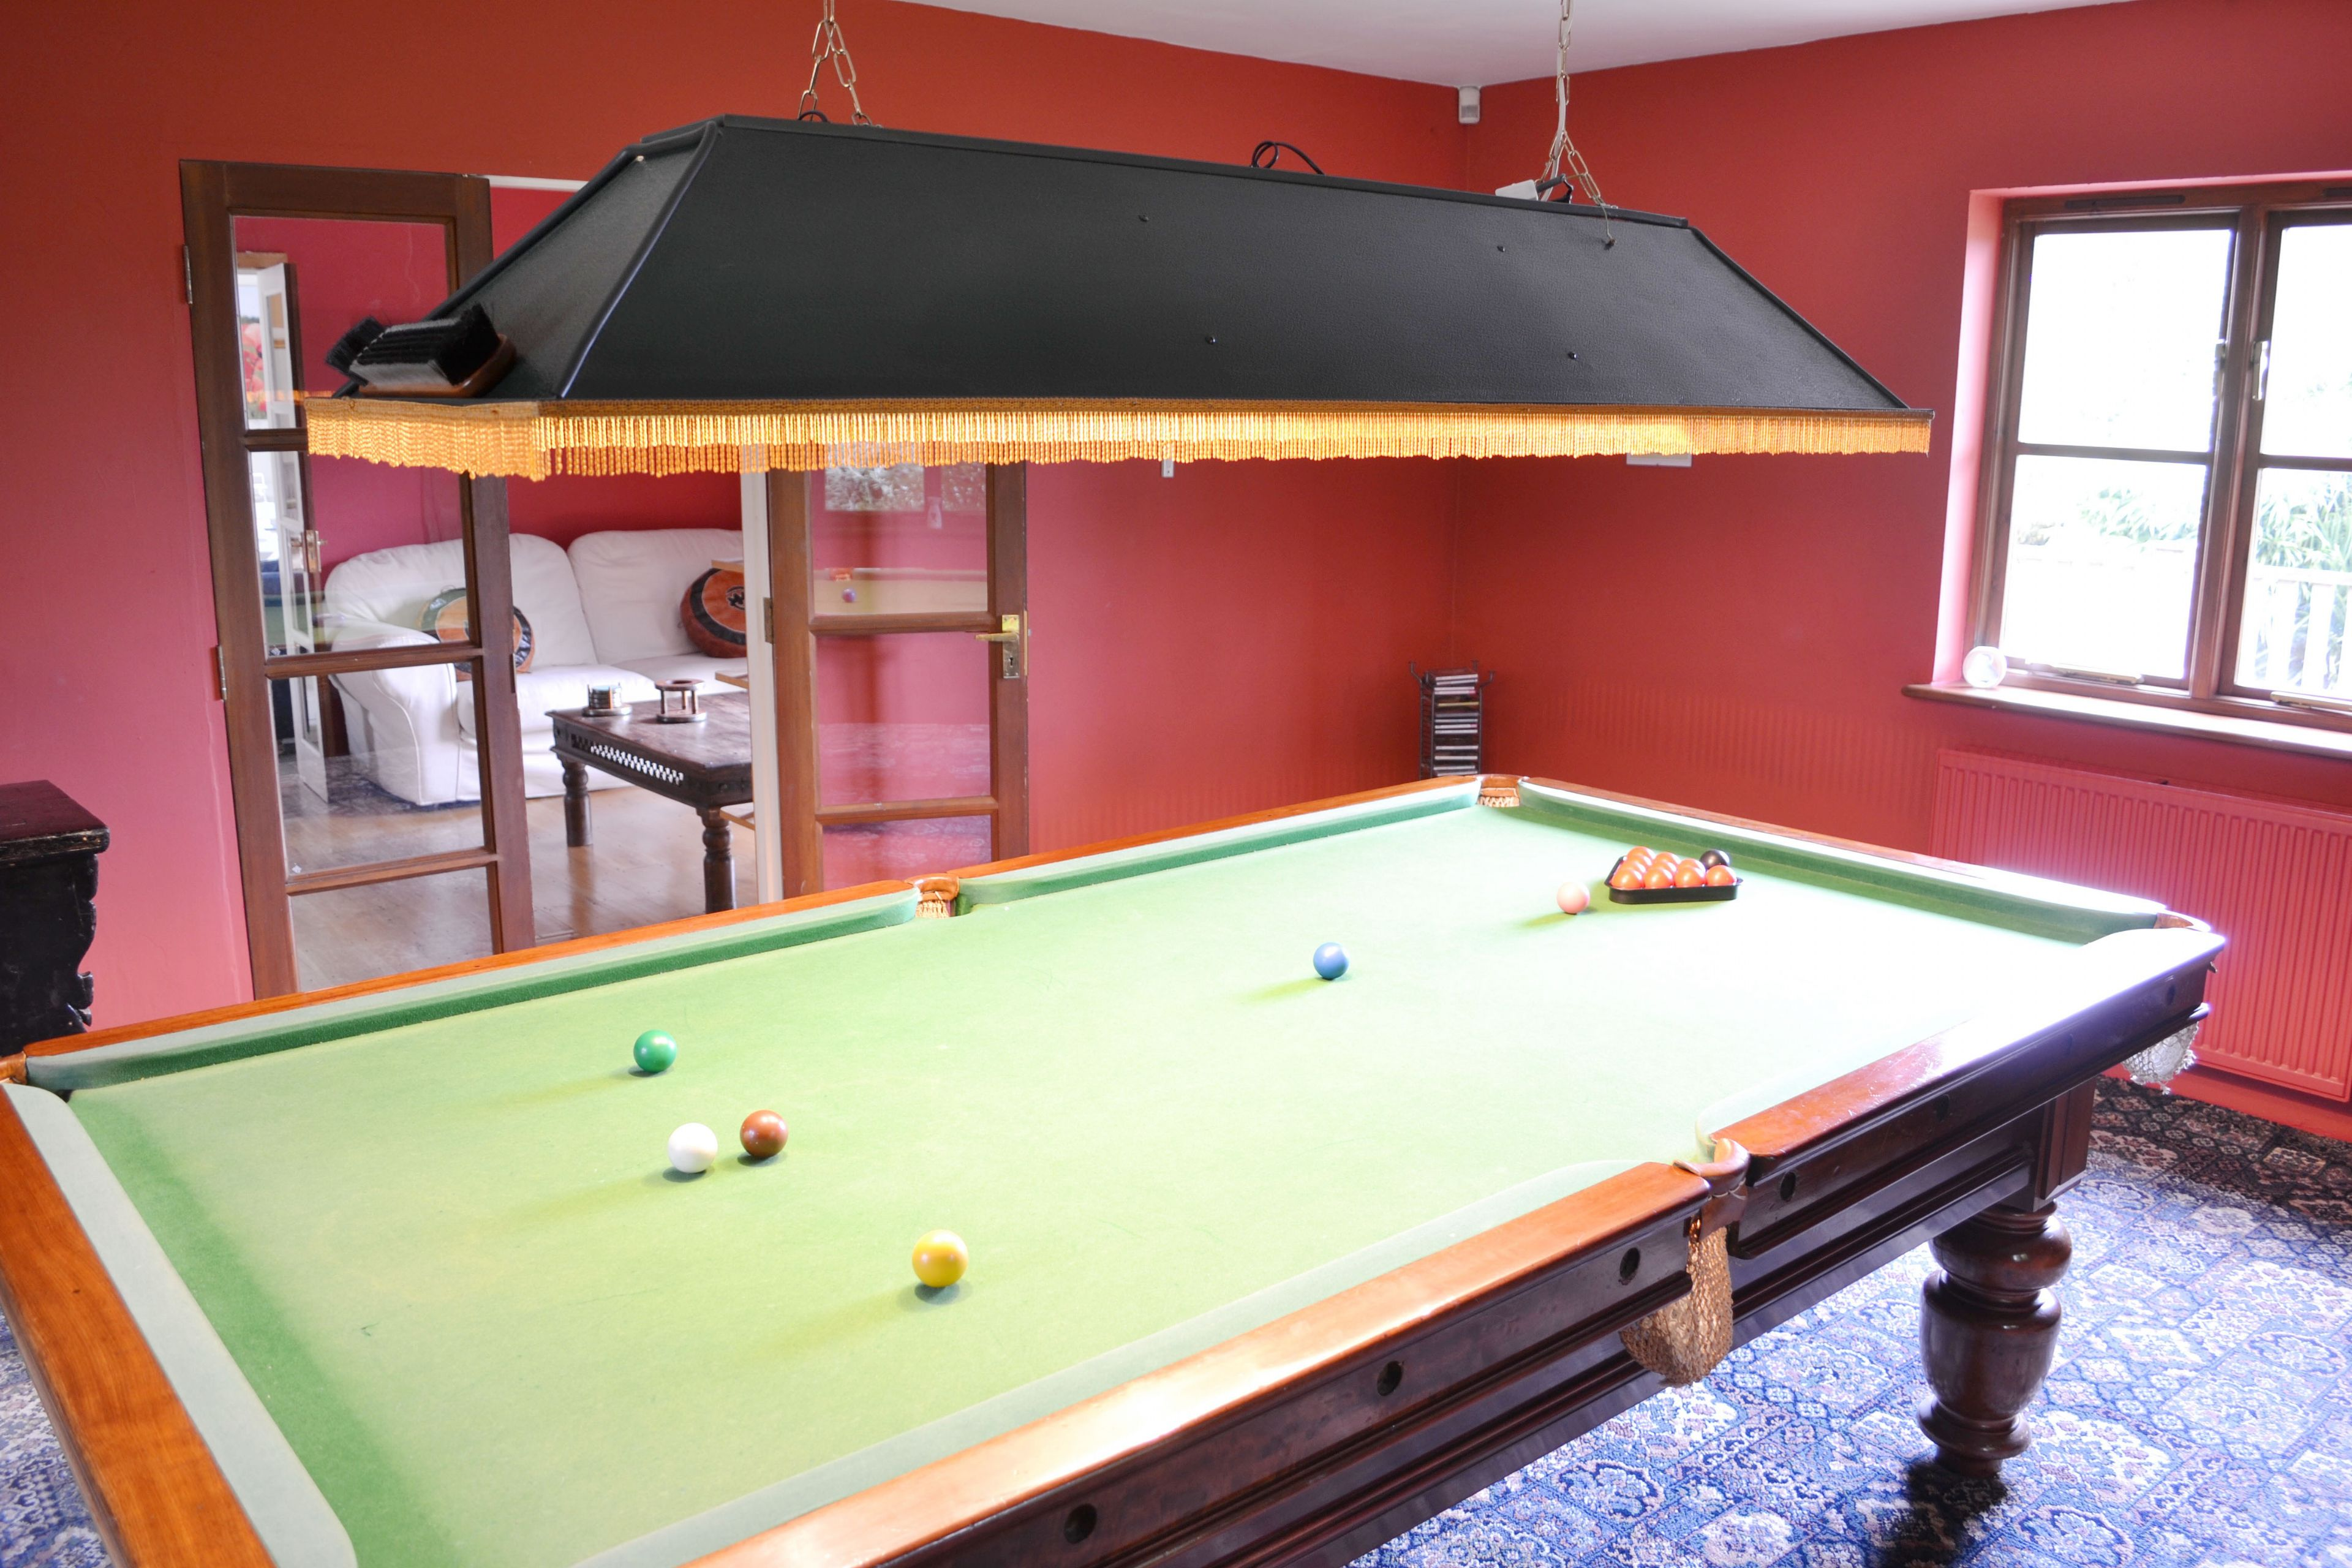 The Barn ground floor: Billiards room with snooker and pool balls